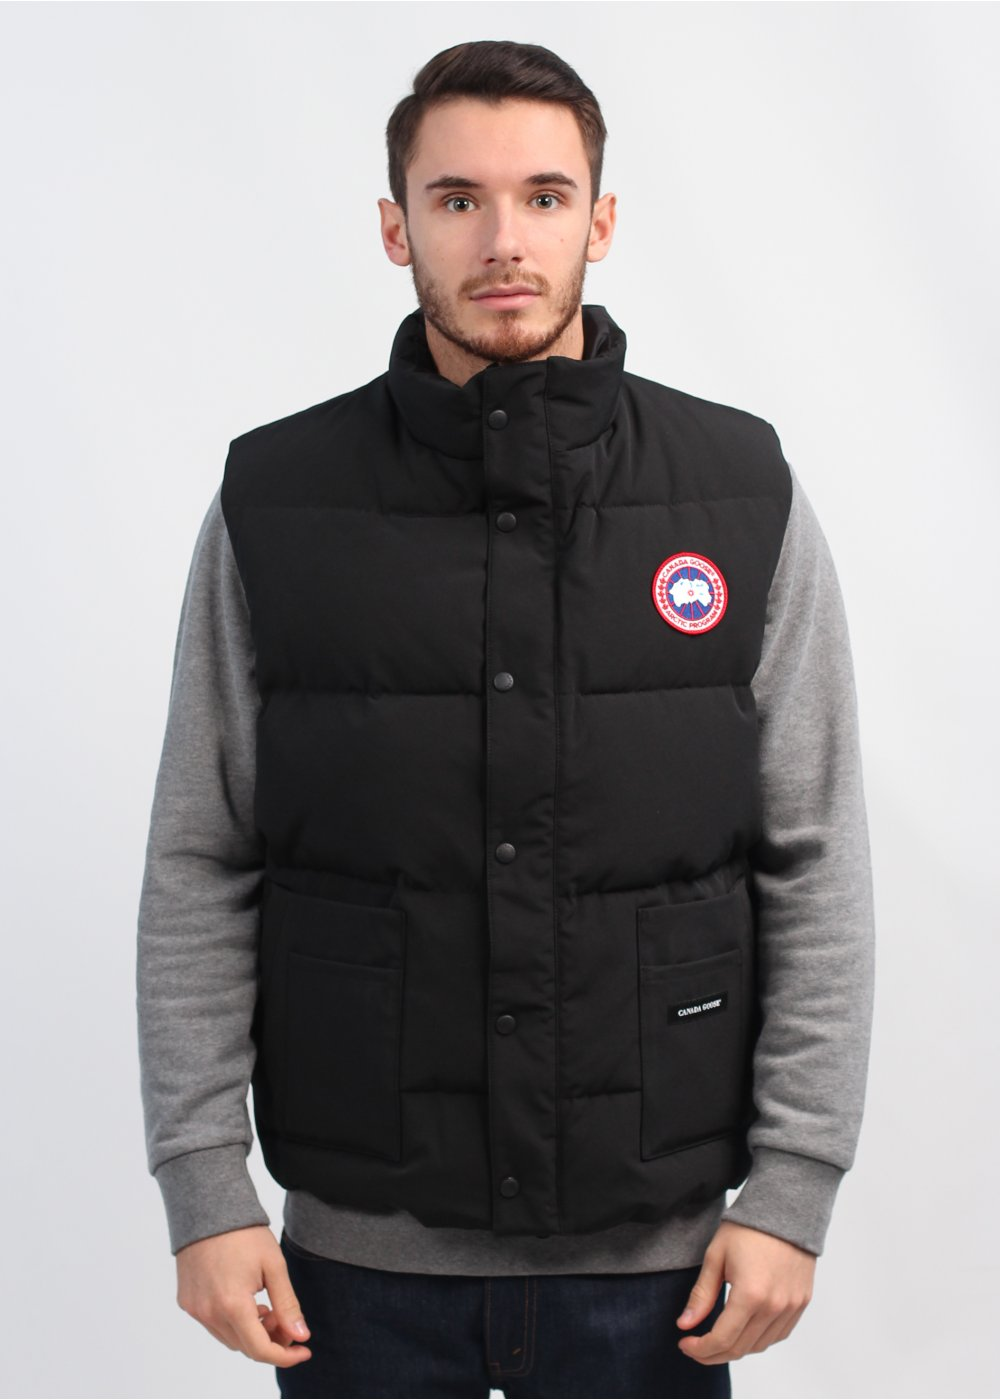 Canada Goose hats online 2016 - Top Brand Canada Goose Outlet Store Fake High Quality Replicas At ...